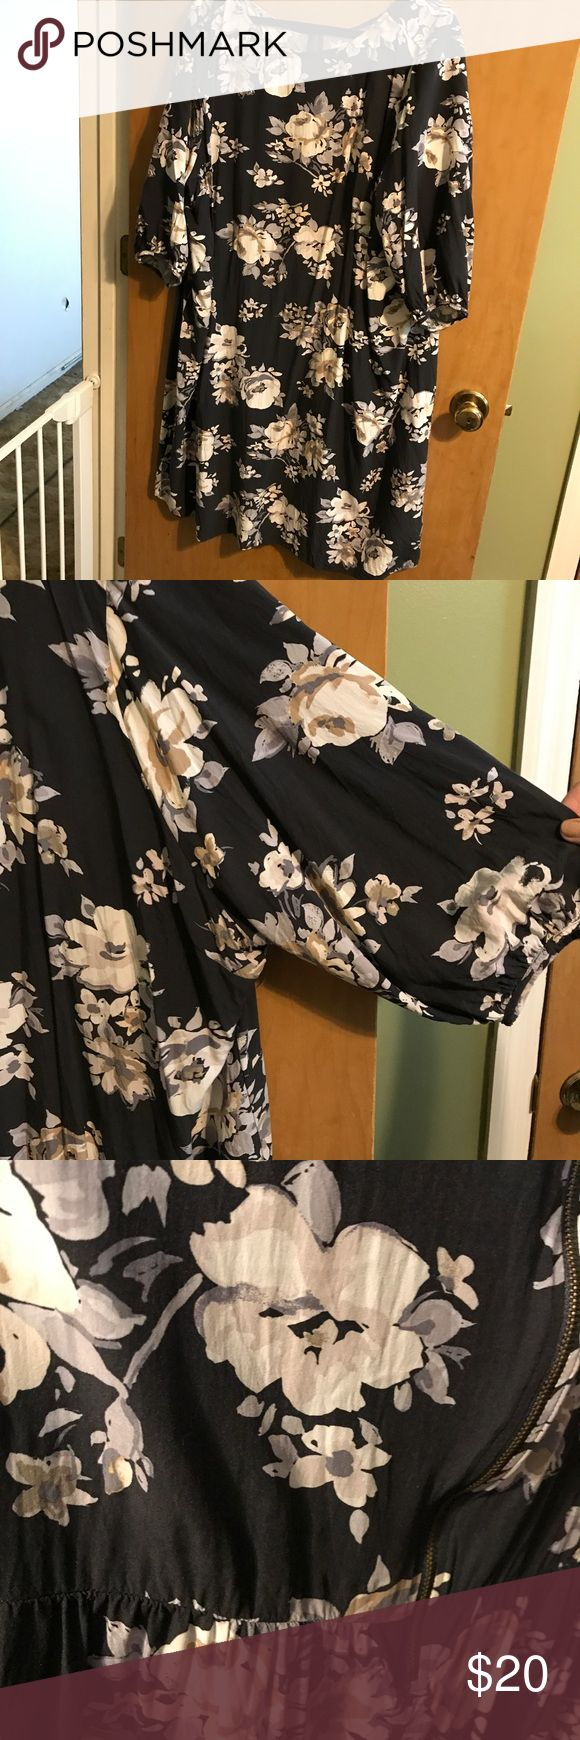 Black floral dress, old navy/gap, size 4X Super cute dress, fitted, pleats in back for shaping, romantic gathered sleeves. Would be super cute with leggings and boots for fall. Great early fall piece when worn solo. Dress it up with jewelry and feels or dress it down for a casual weekend look. Old Navy Dresses Mini